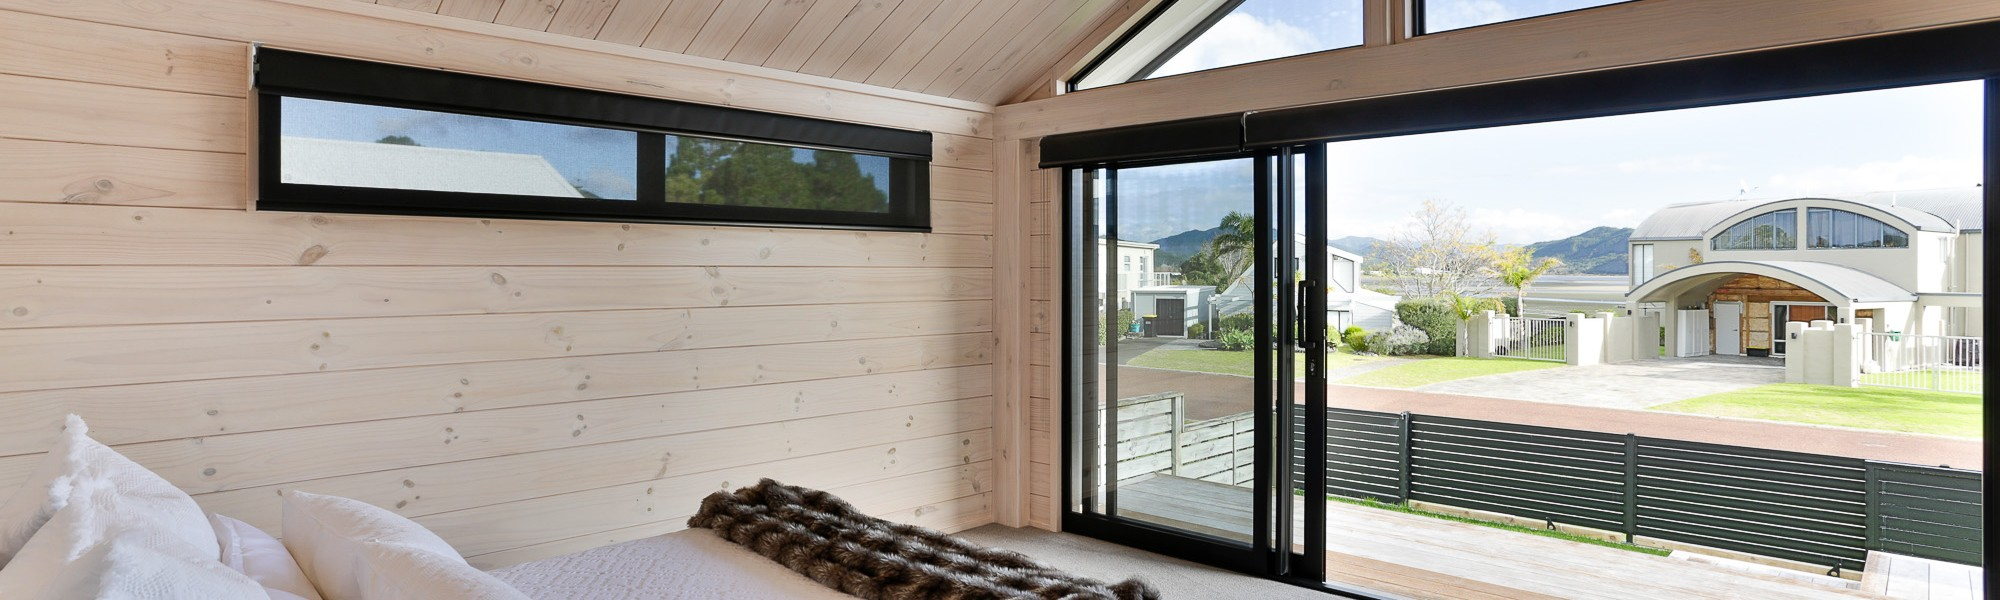 Mullan Family Holiday Home image 8